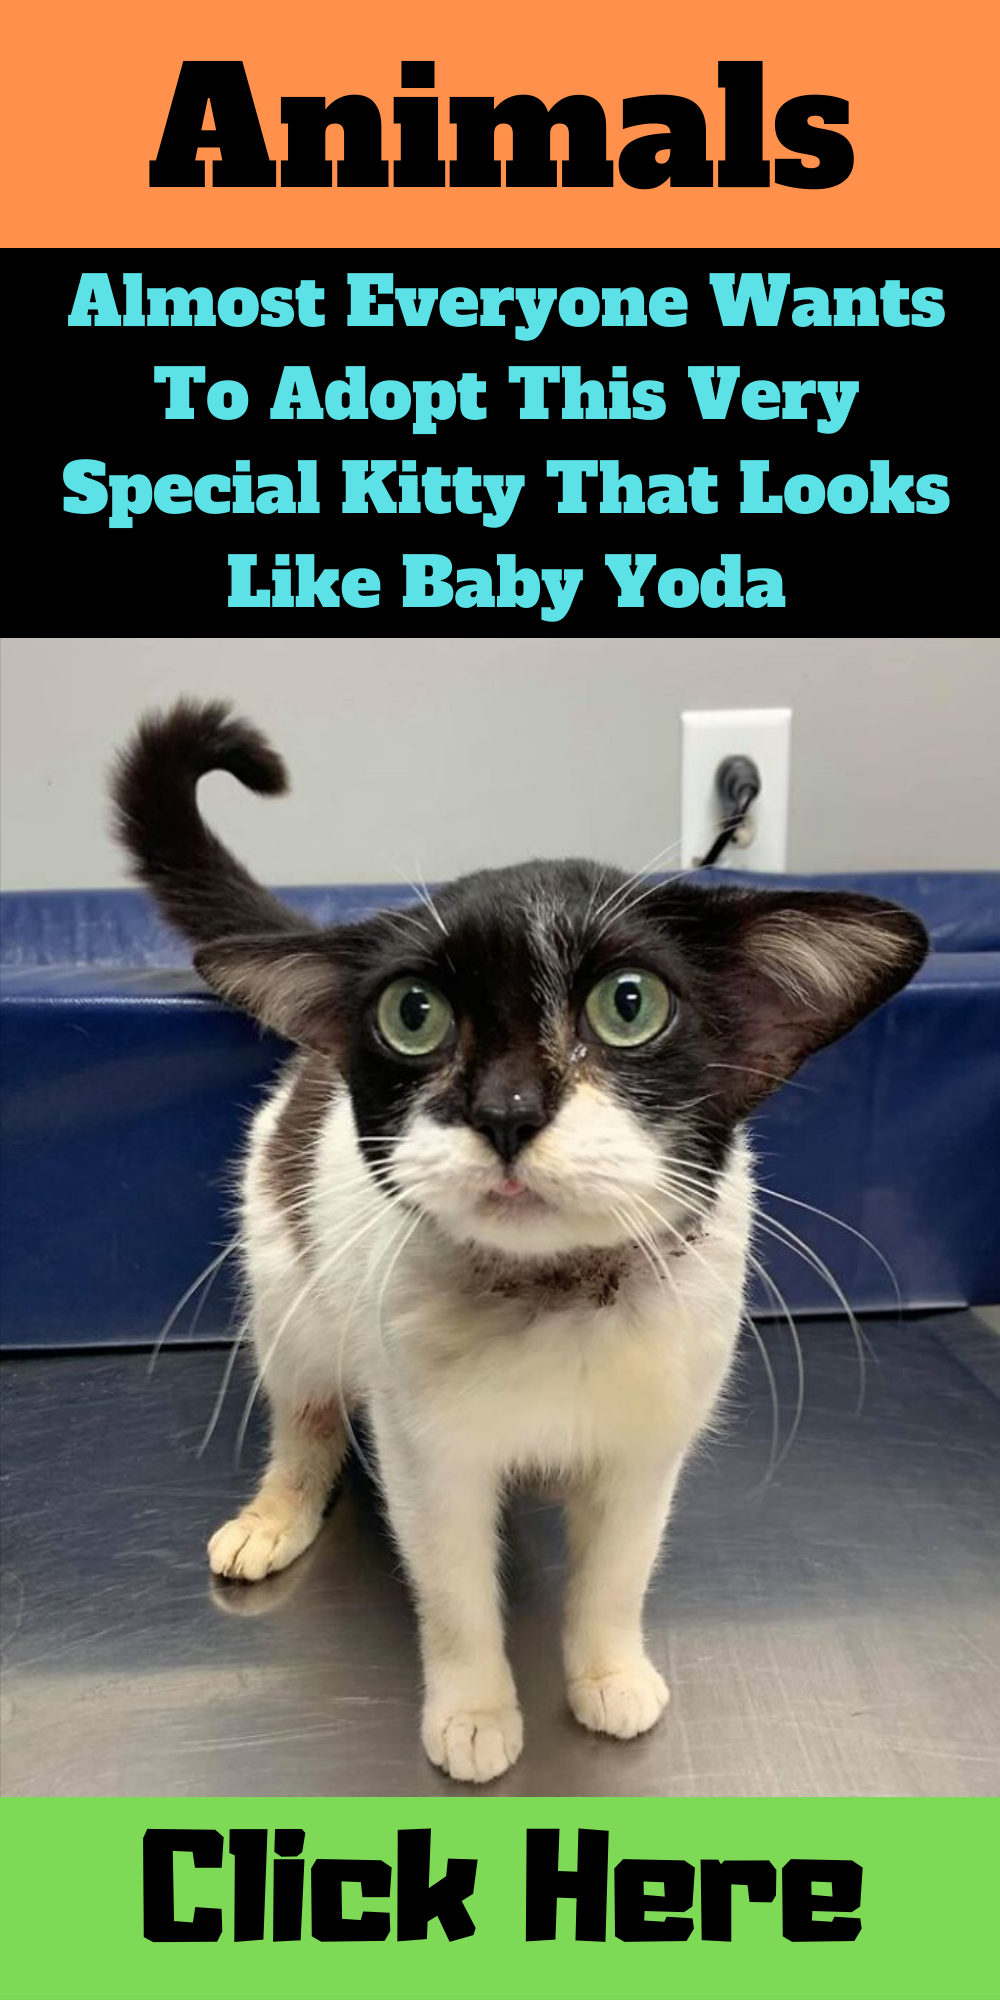 Almost Everyone Wants To Adopt This Very Special Kitty